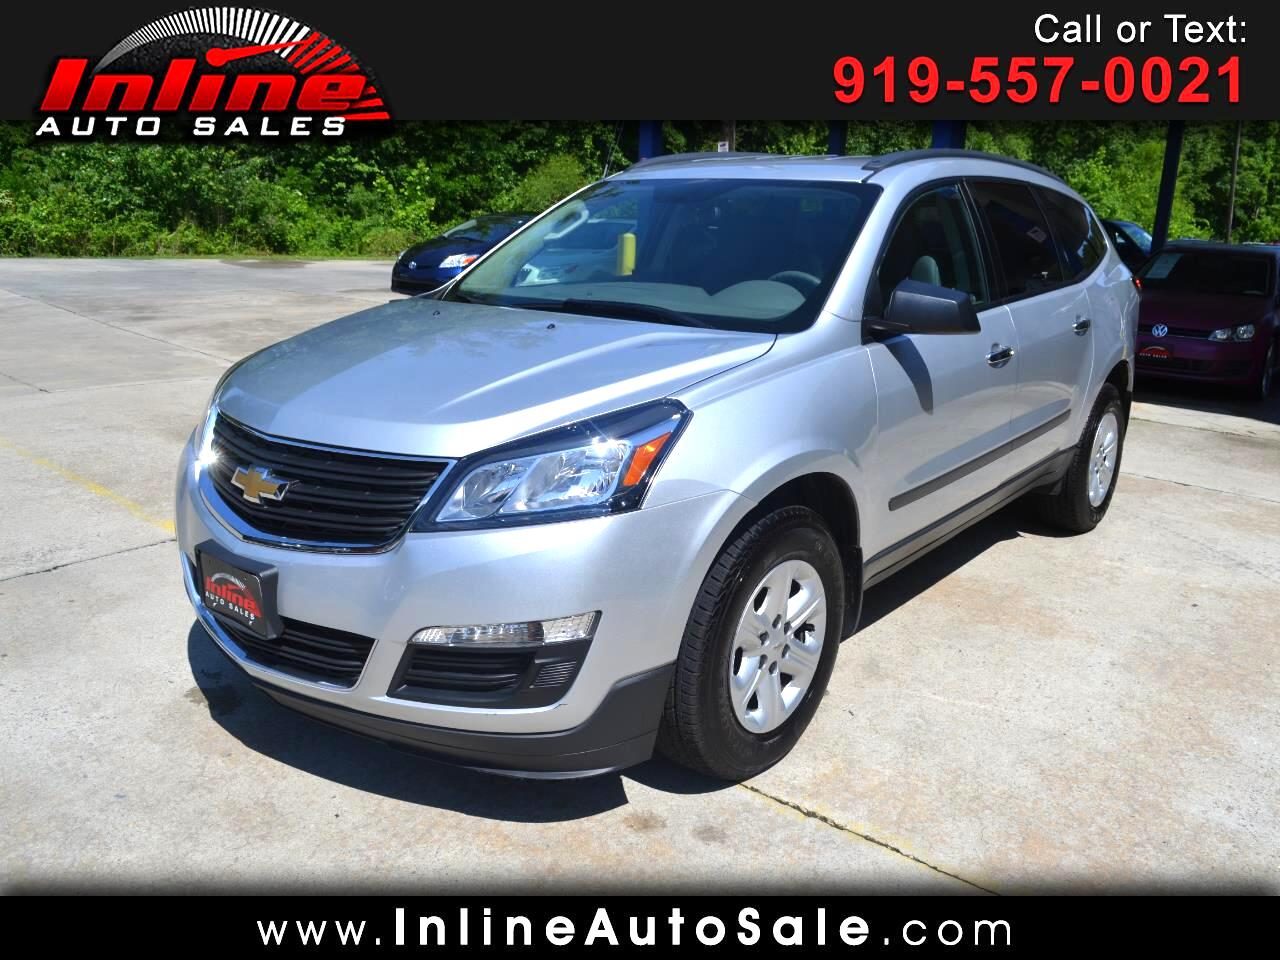 2016 Chevrolet Traverse AWD 4dr LS